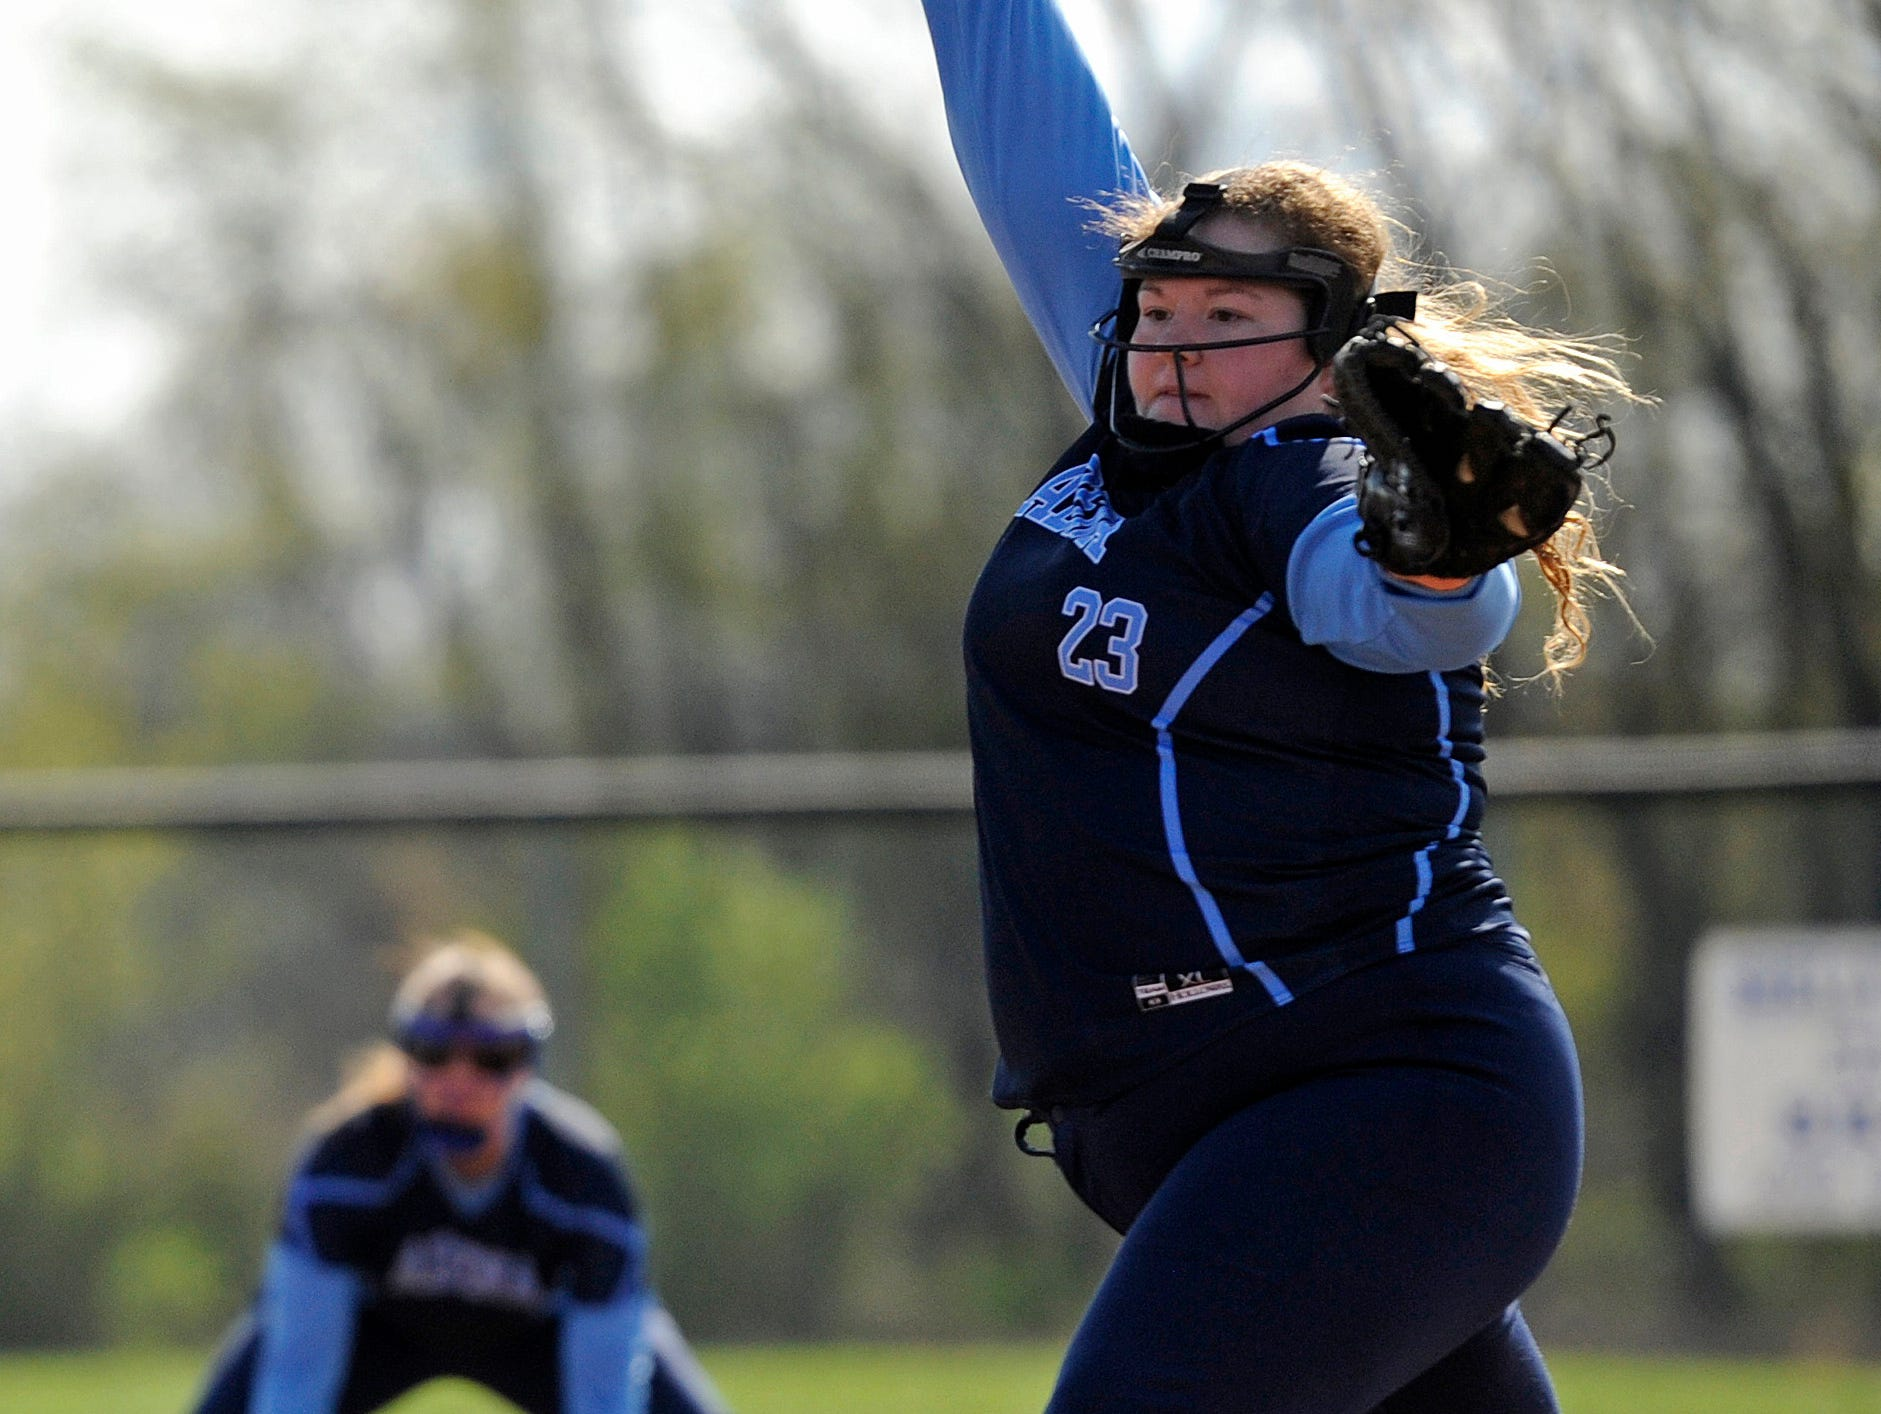 Adena's Brooklyn Detty pitched the entire game against Southeastern at Southeastern on Wednesday. Adena won 10-3.